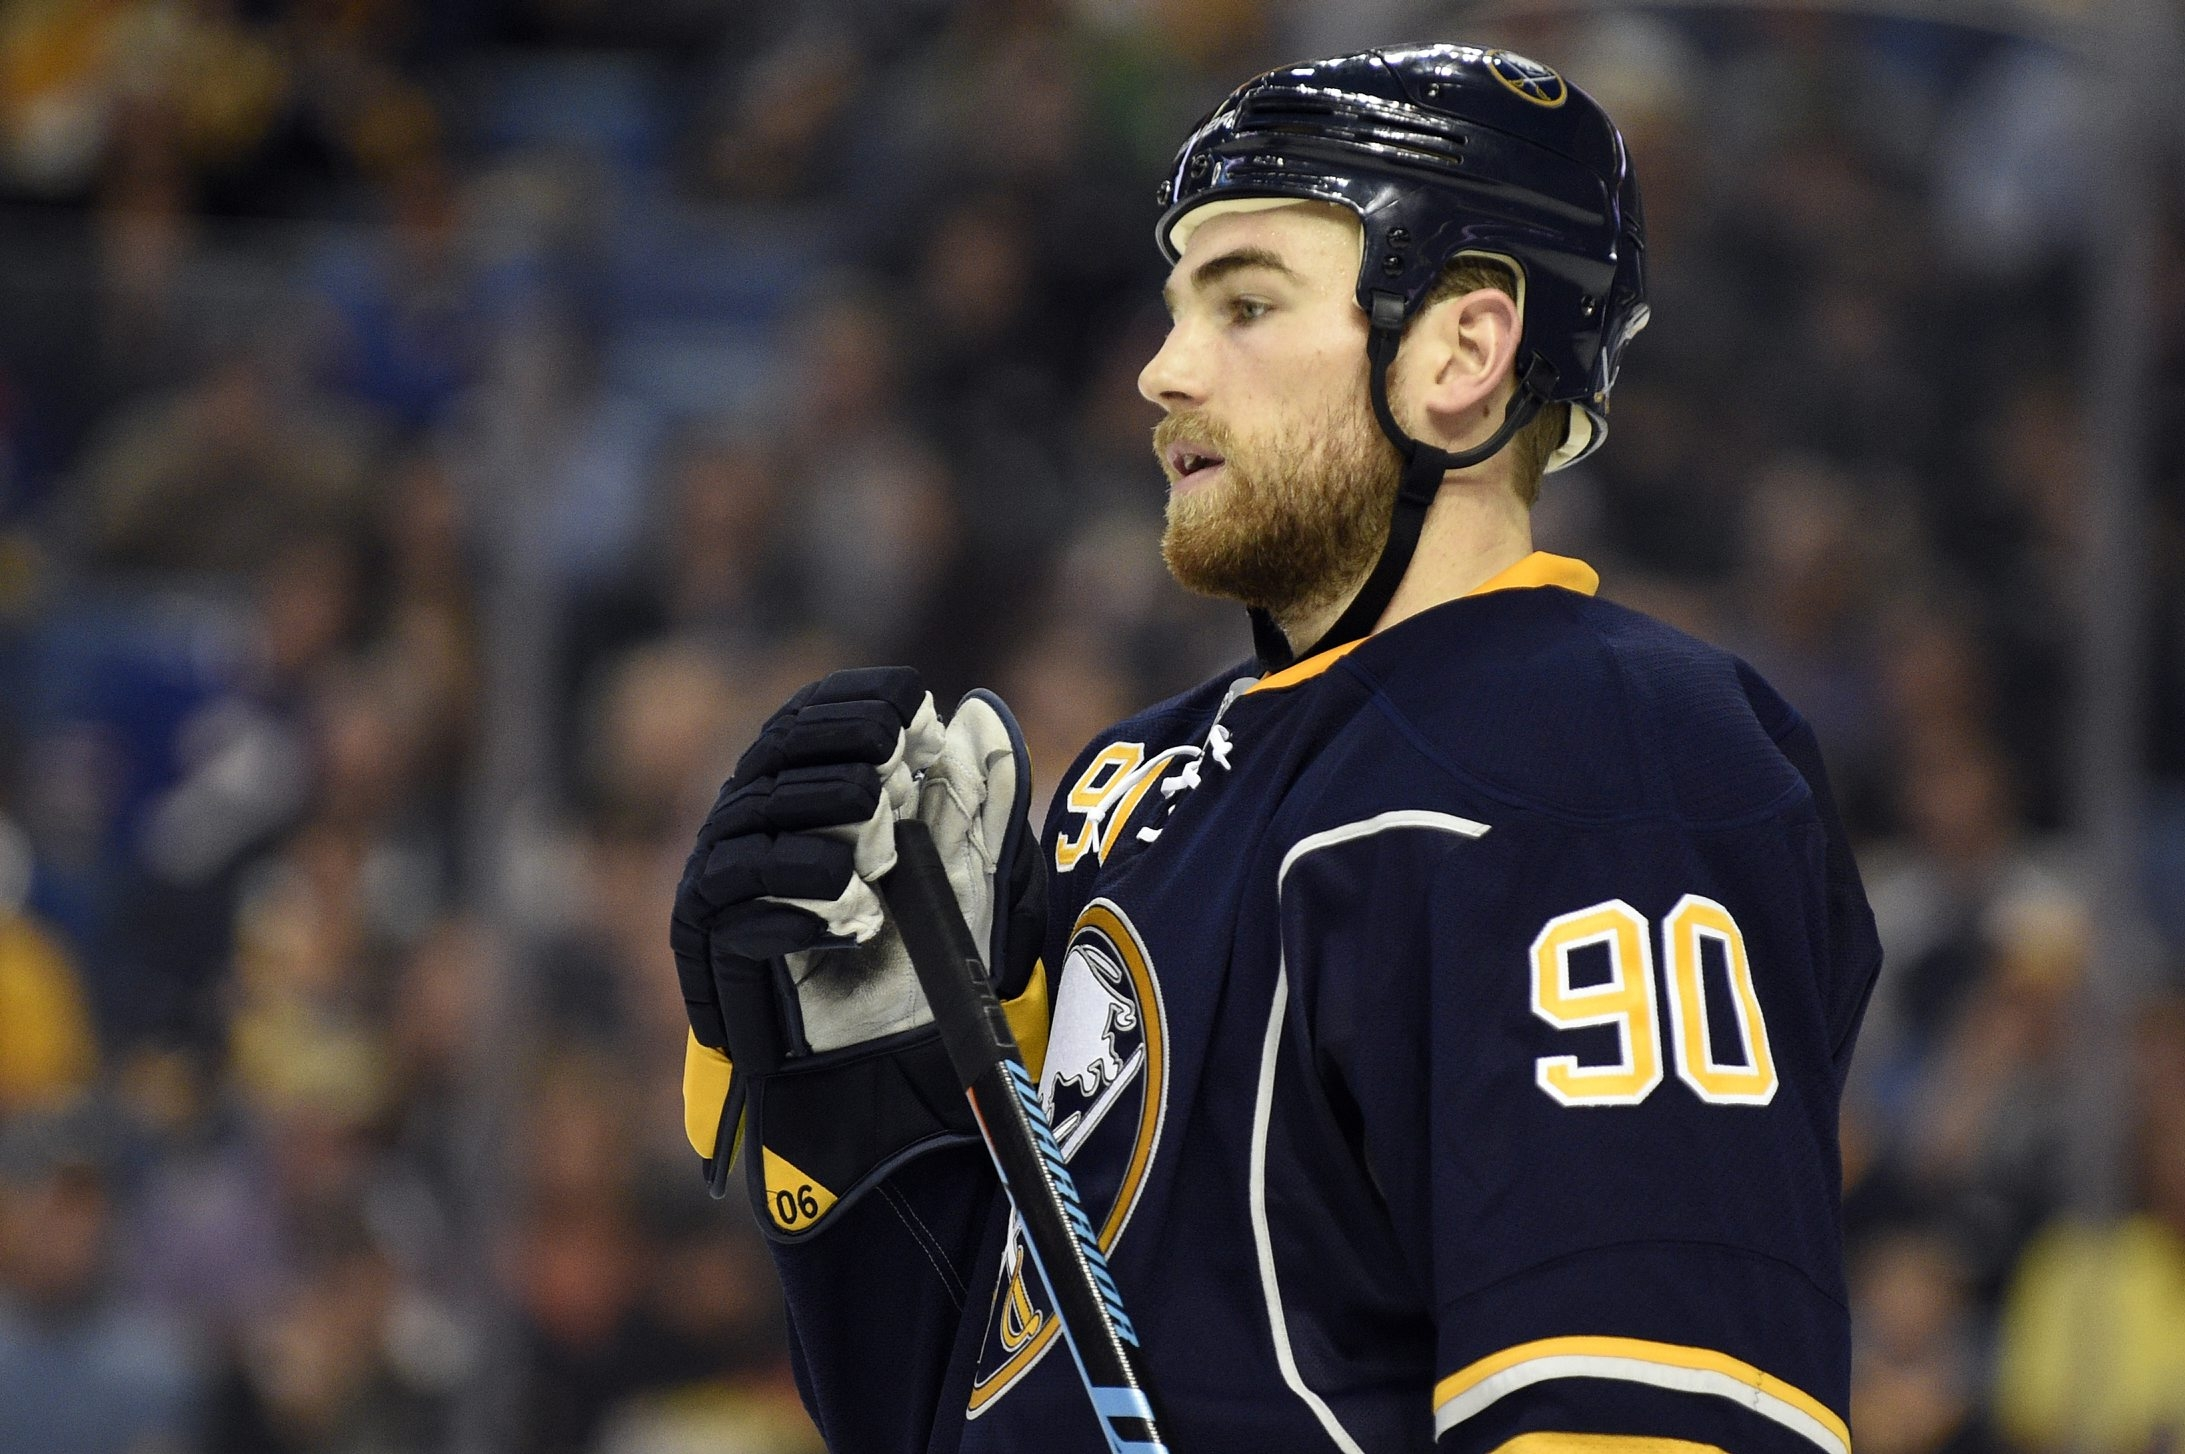 After playing major minutes in two straight games, Ryan O'Reilly got a day off.